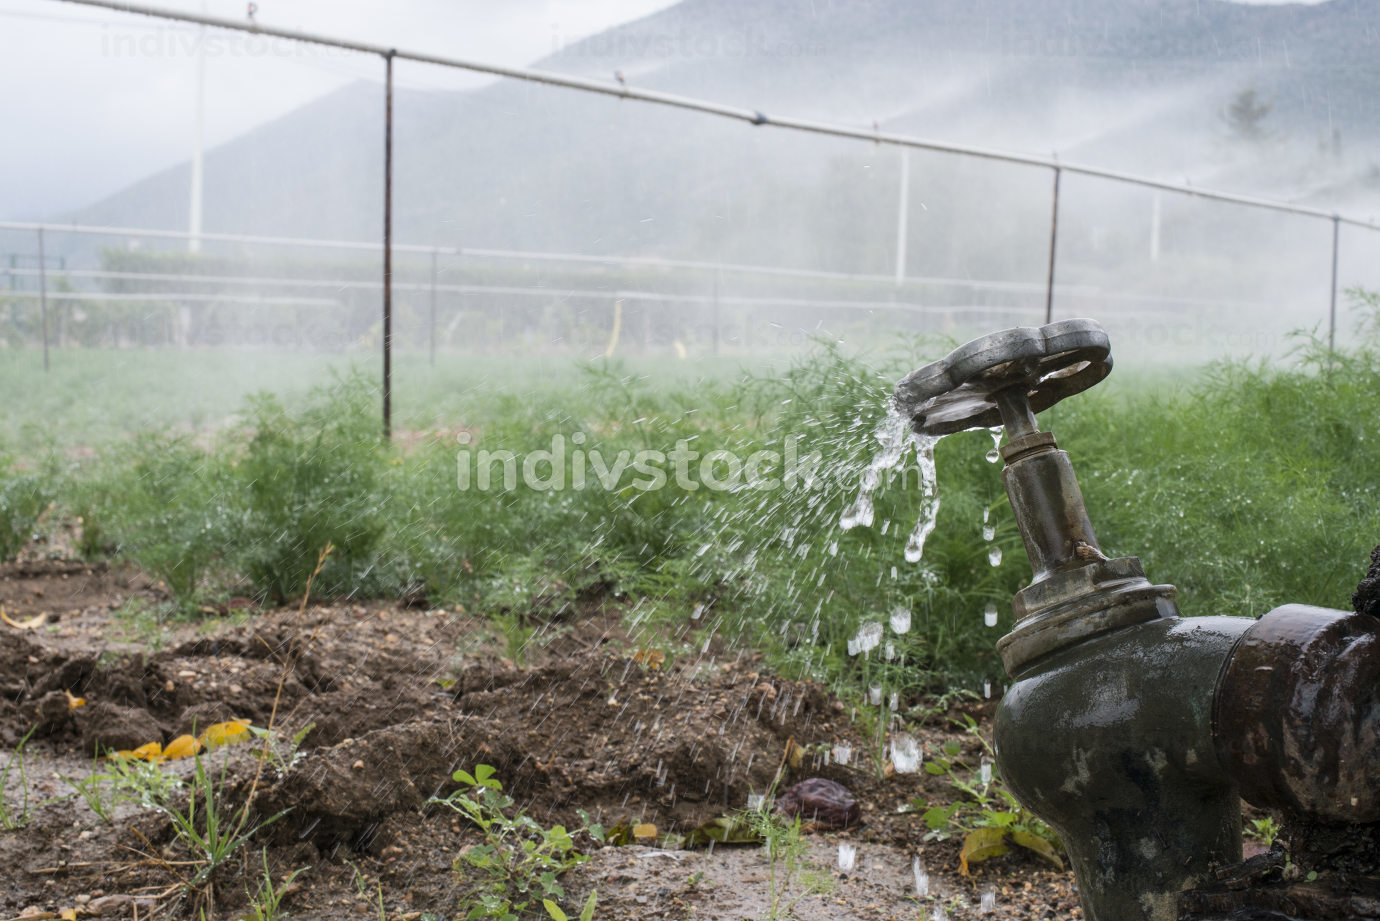 Pipes and tap water for watering plants